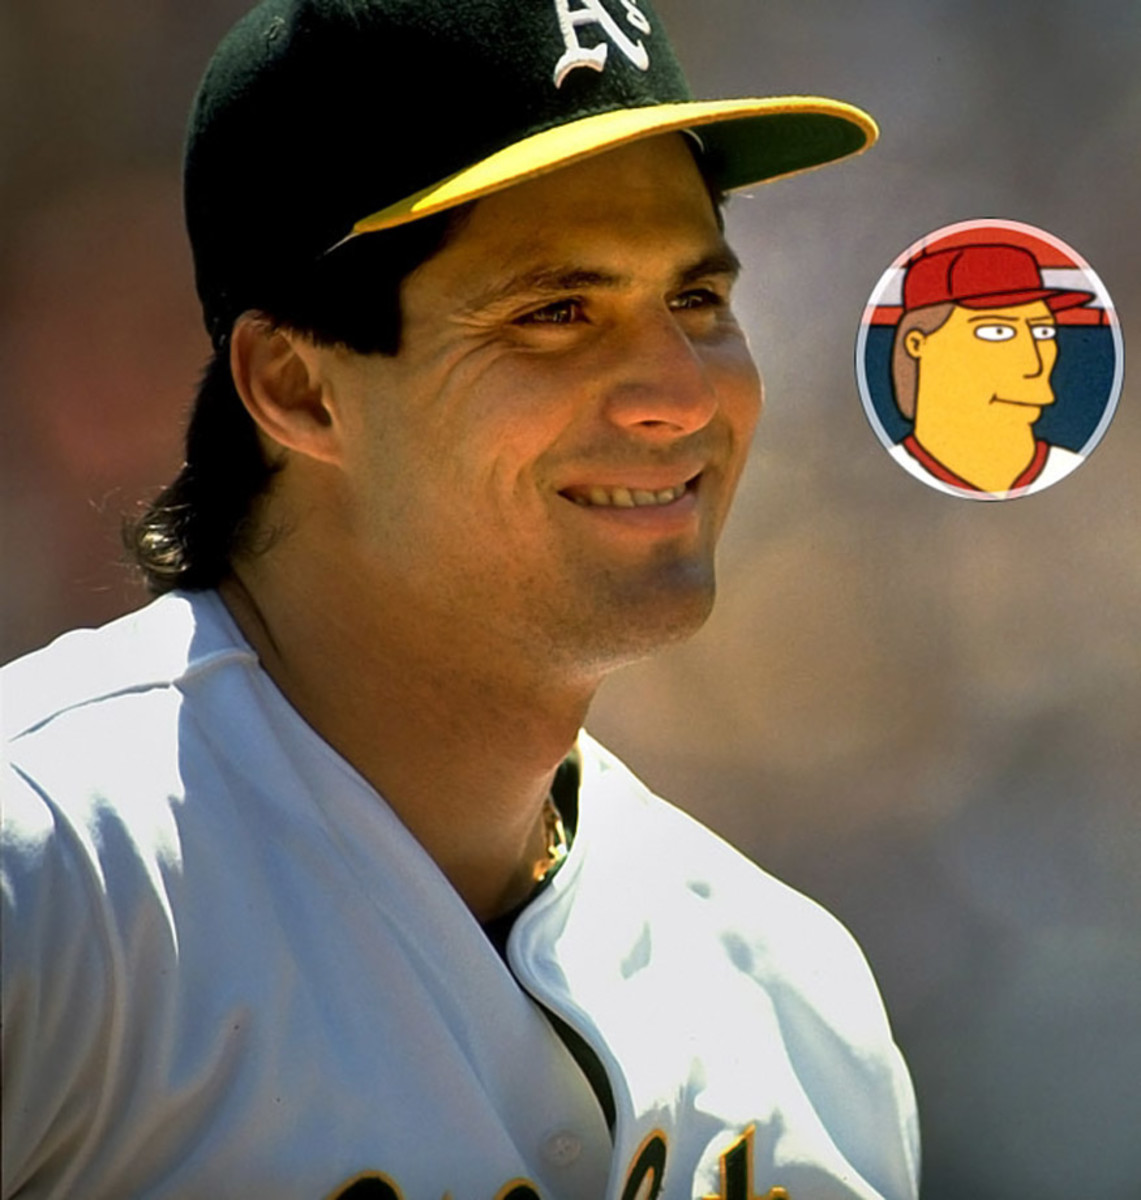 jose-canseco-the-simpsons.jpg